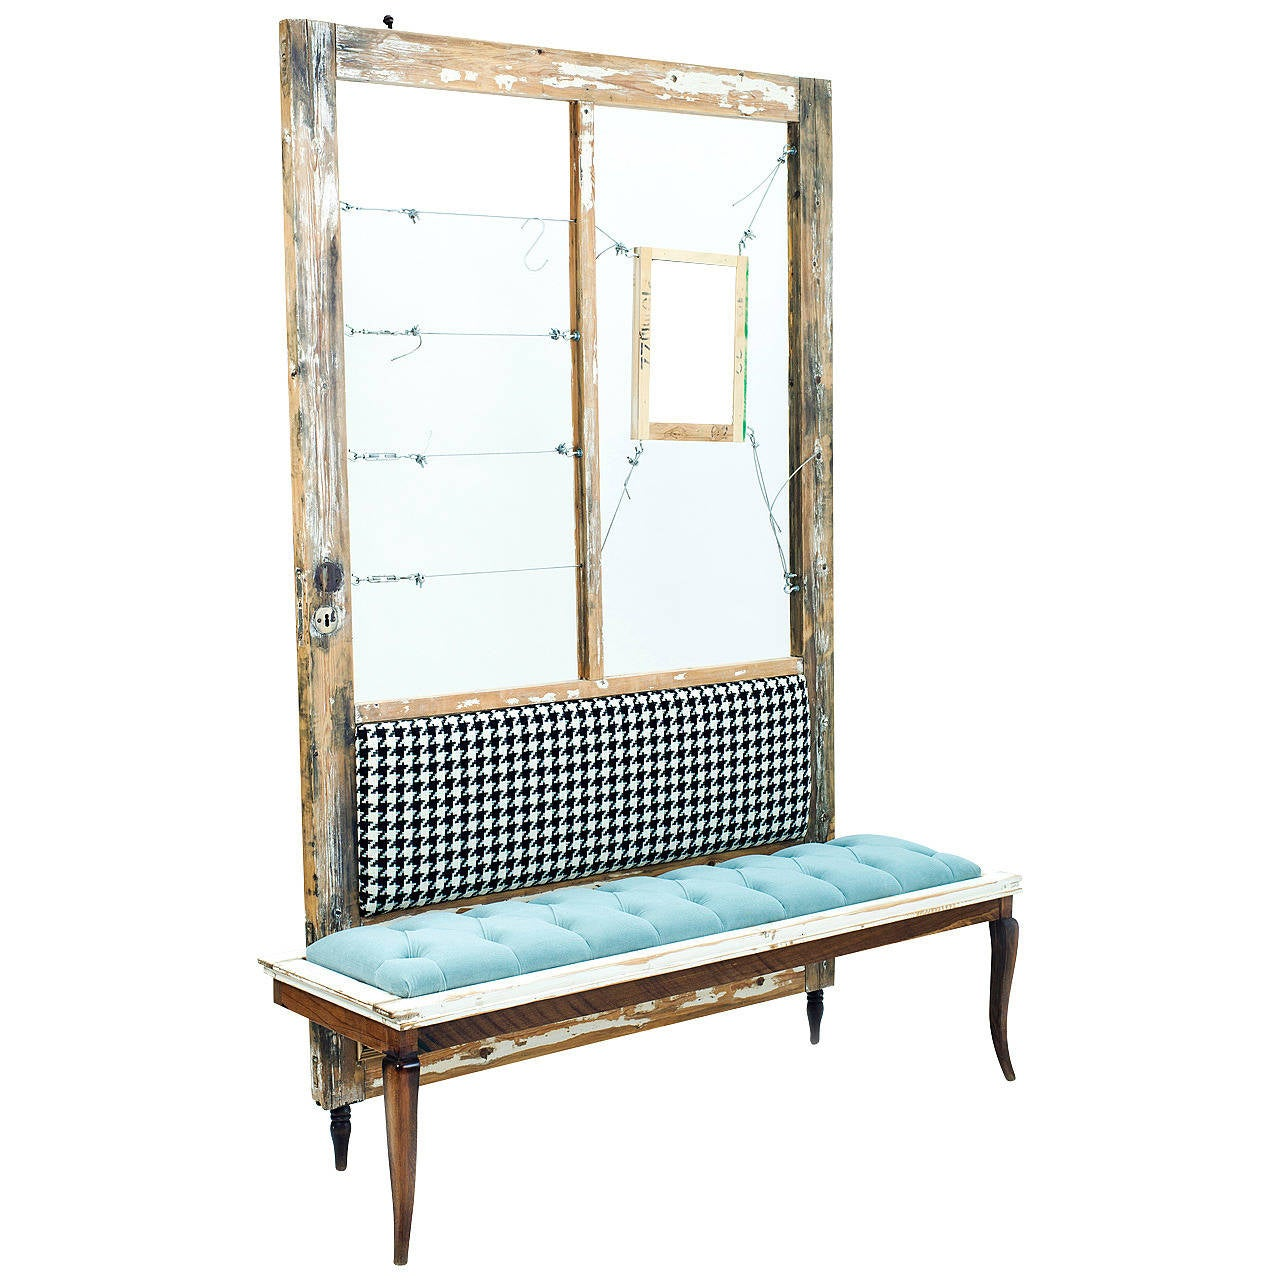 Blue Upholstered Bench With Attached Mirror By Designer Amir Raveh At 1stdibs